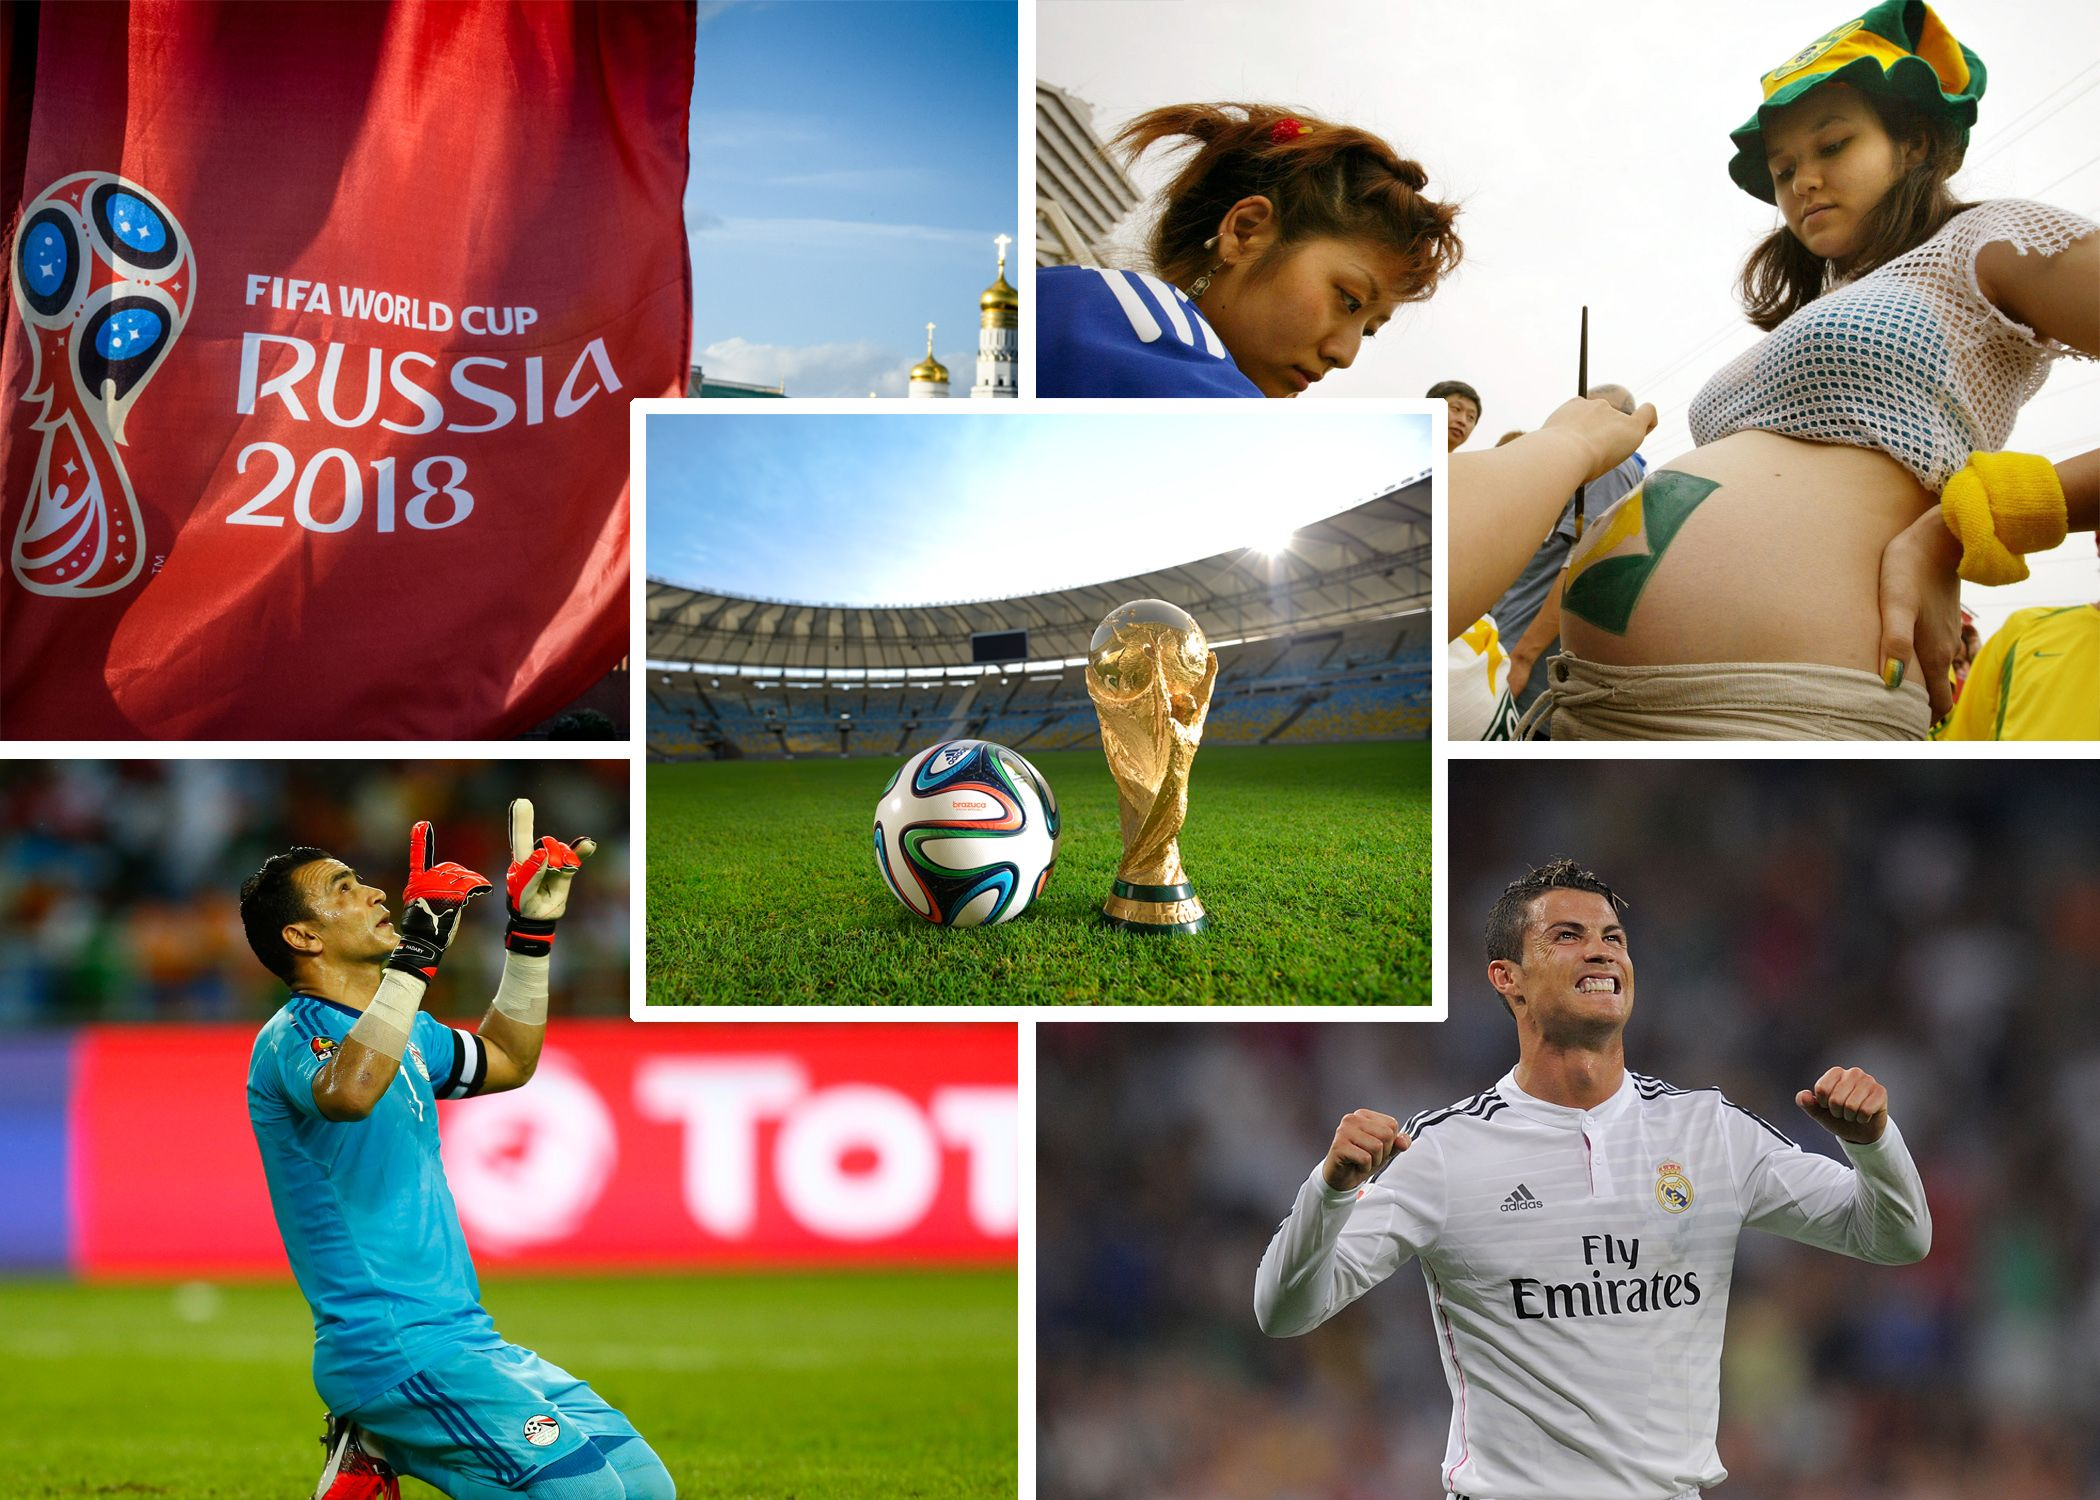 FIFA World Cup 2018 In Russia: 50 Things To Know